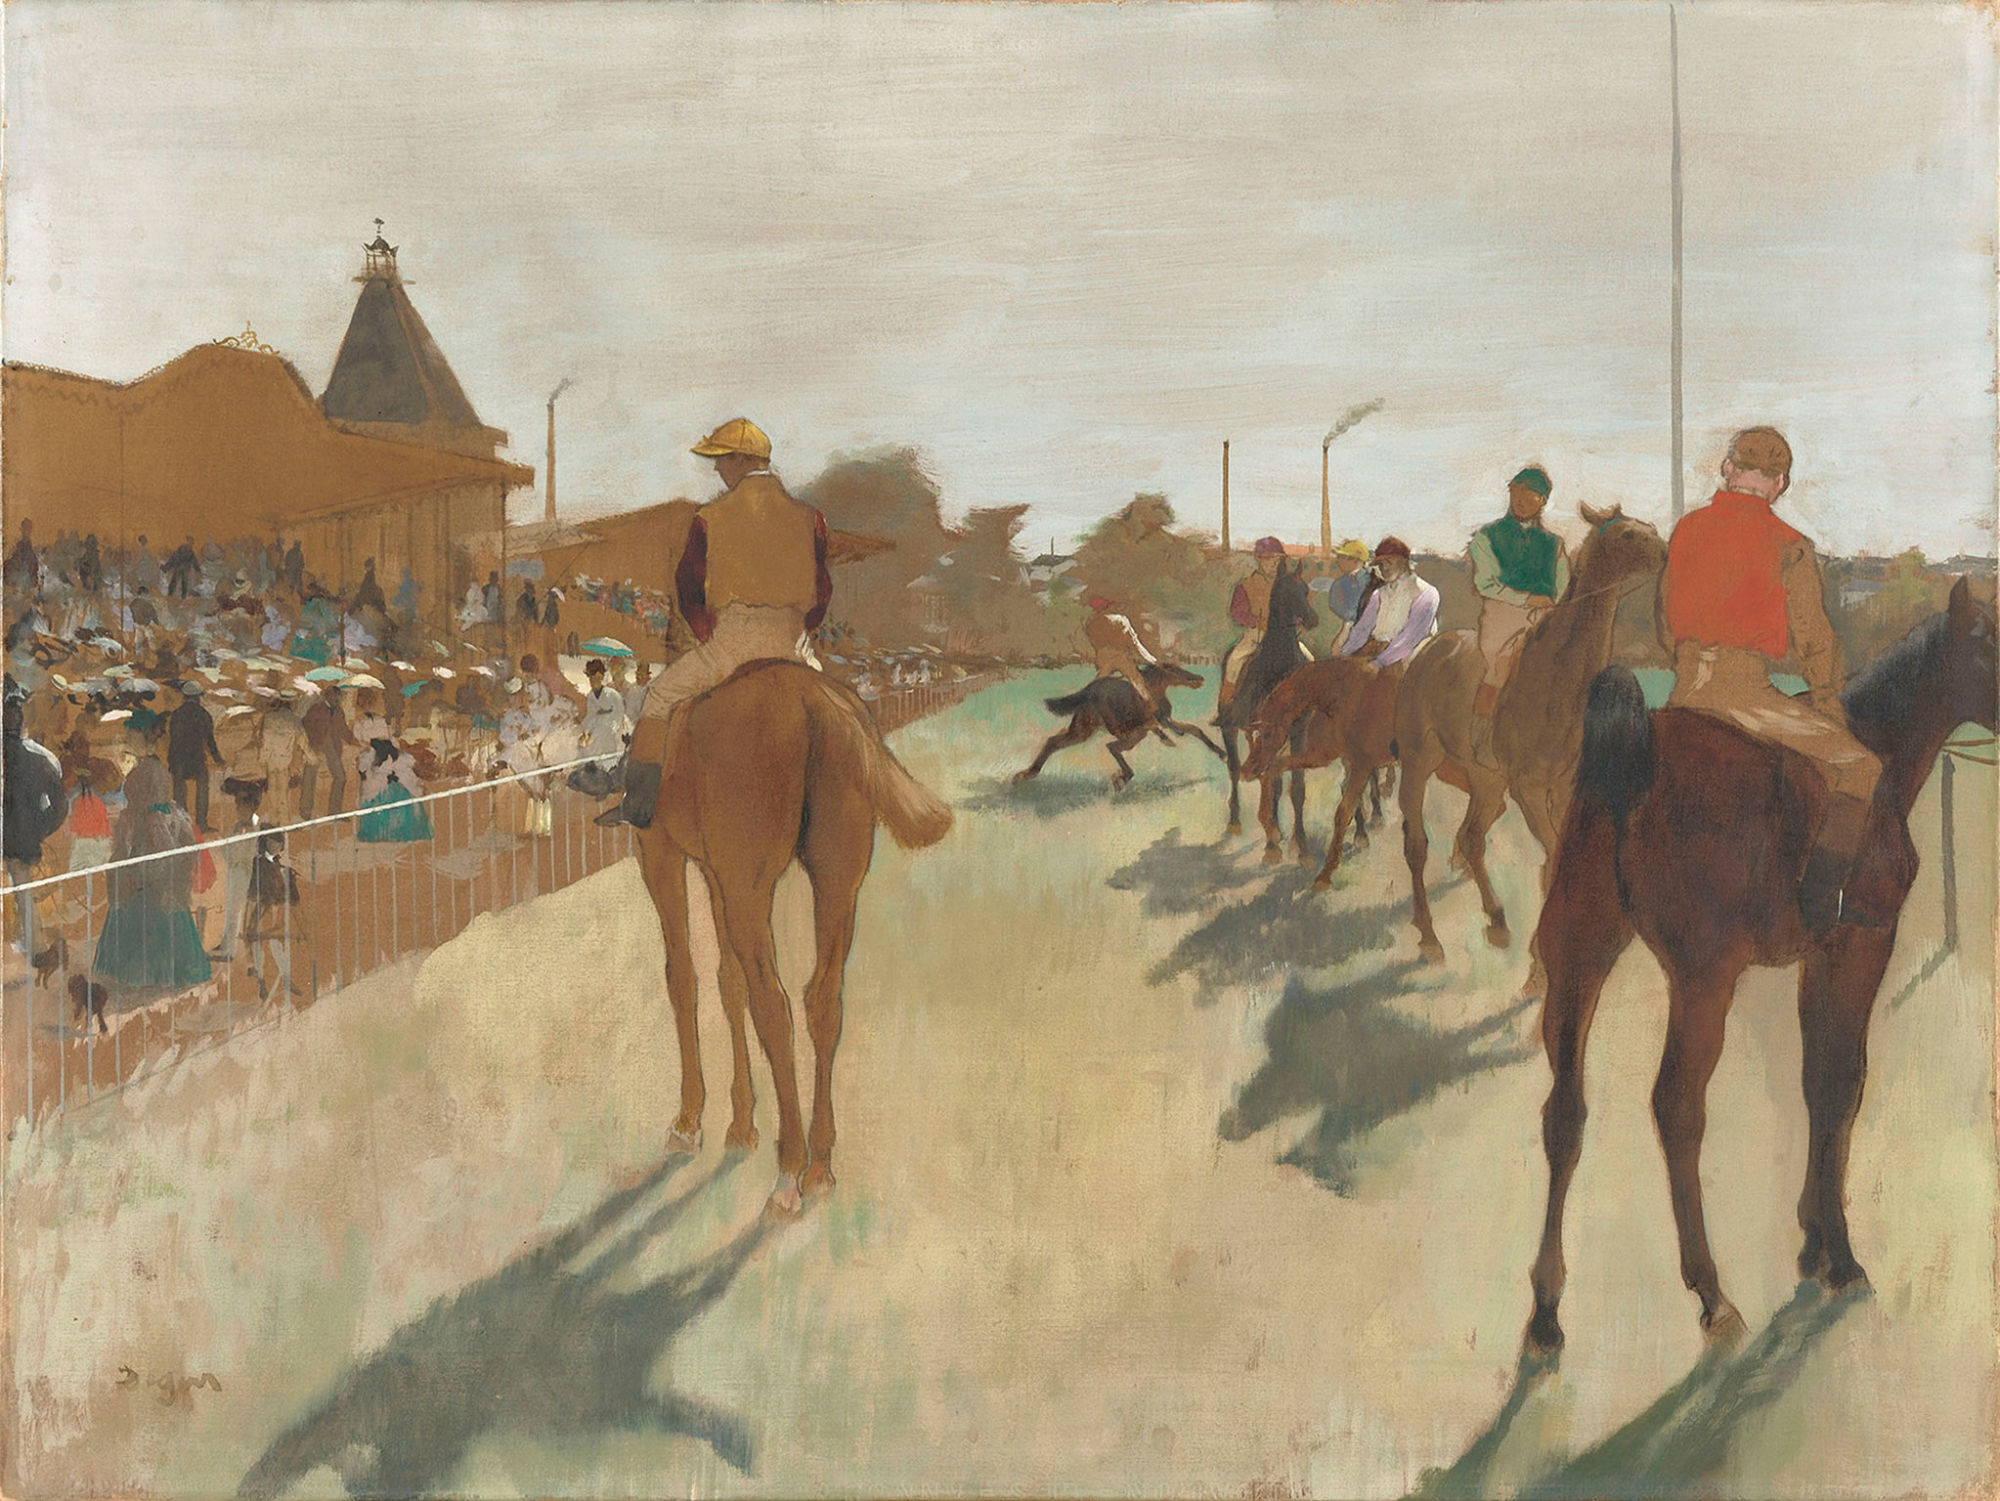 The Parade, also known as Race Horses in front of the Tribunes, Edgar Degas, 1866-1868.